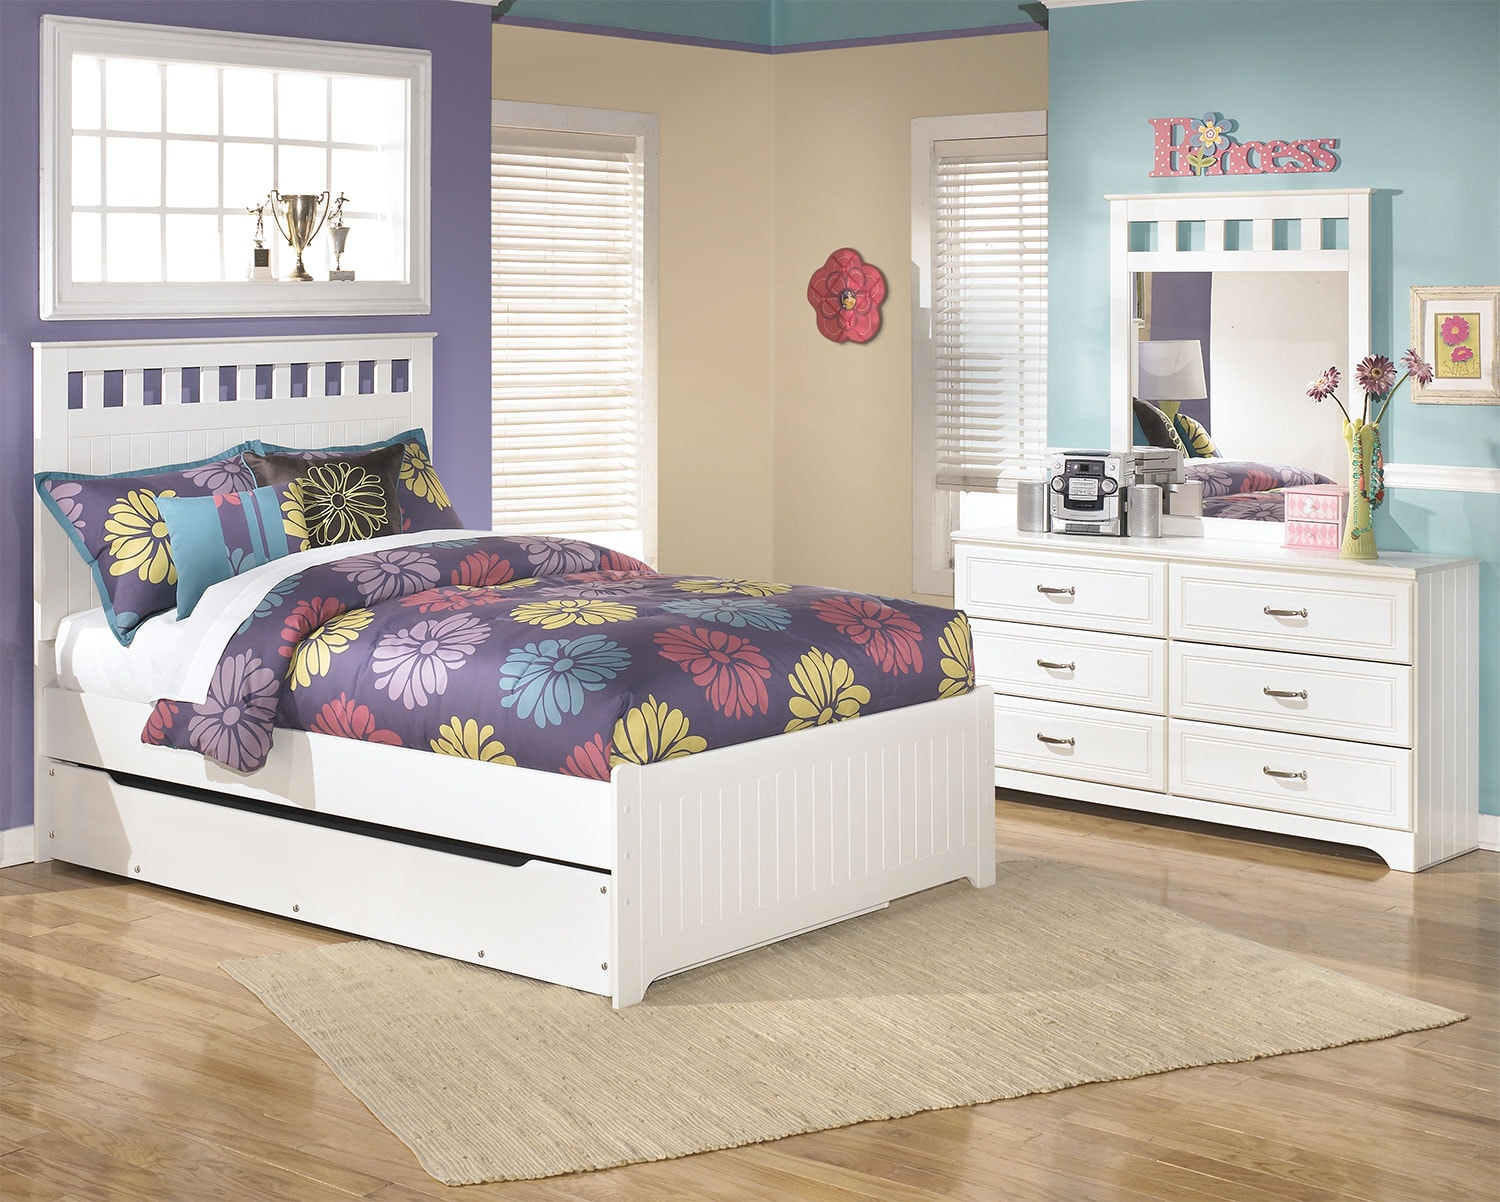 Kids Furniture - Lulu 5-Piece Full Panel Bed Package with Trundle